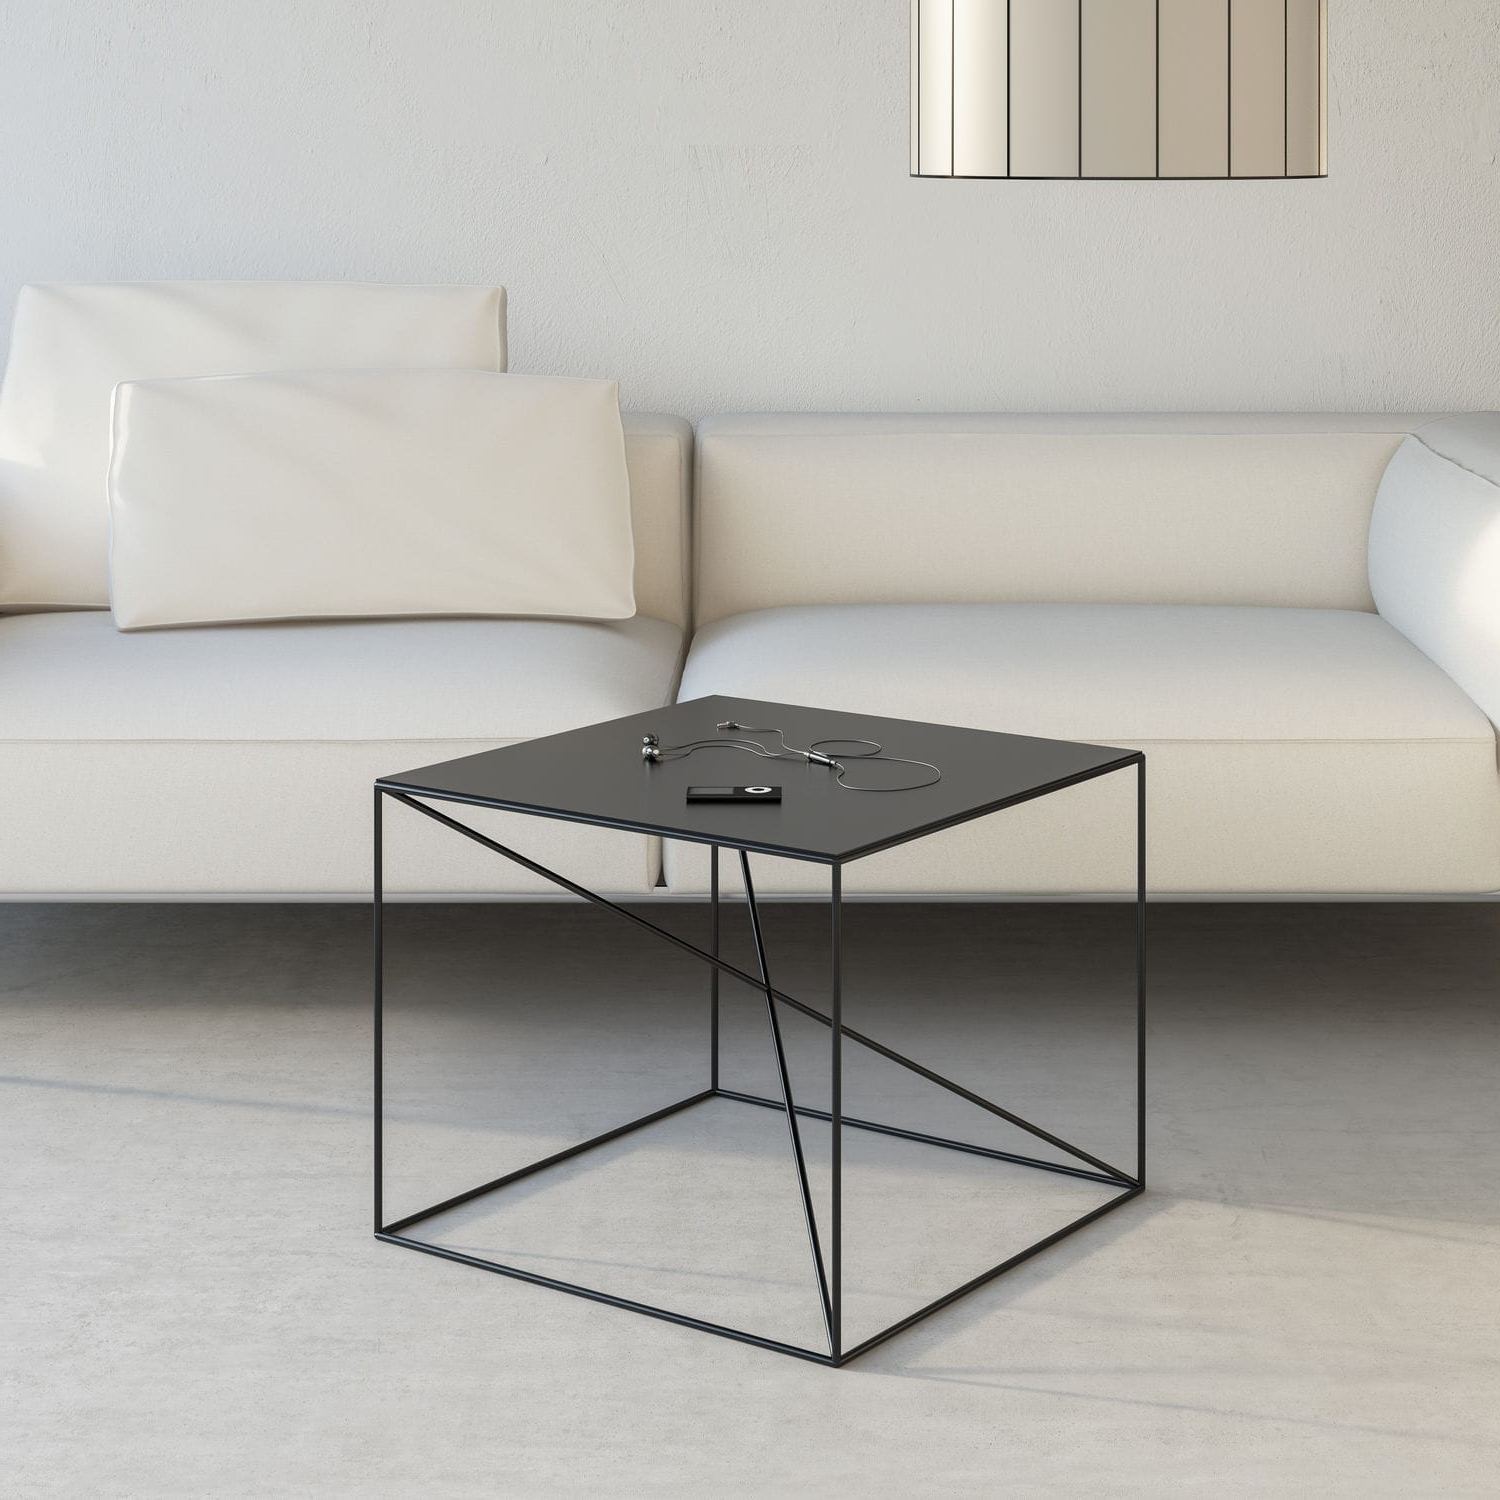 Well Known Minimalist Coffee Tables In Minimalist Design Coffee Table / Powder Coated Steel / Rectangular (View 17 of 20)